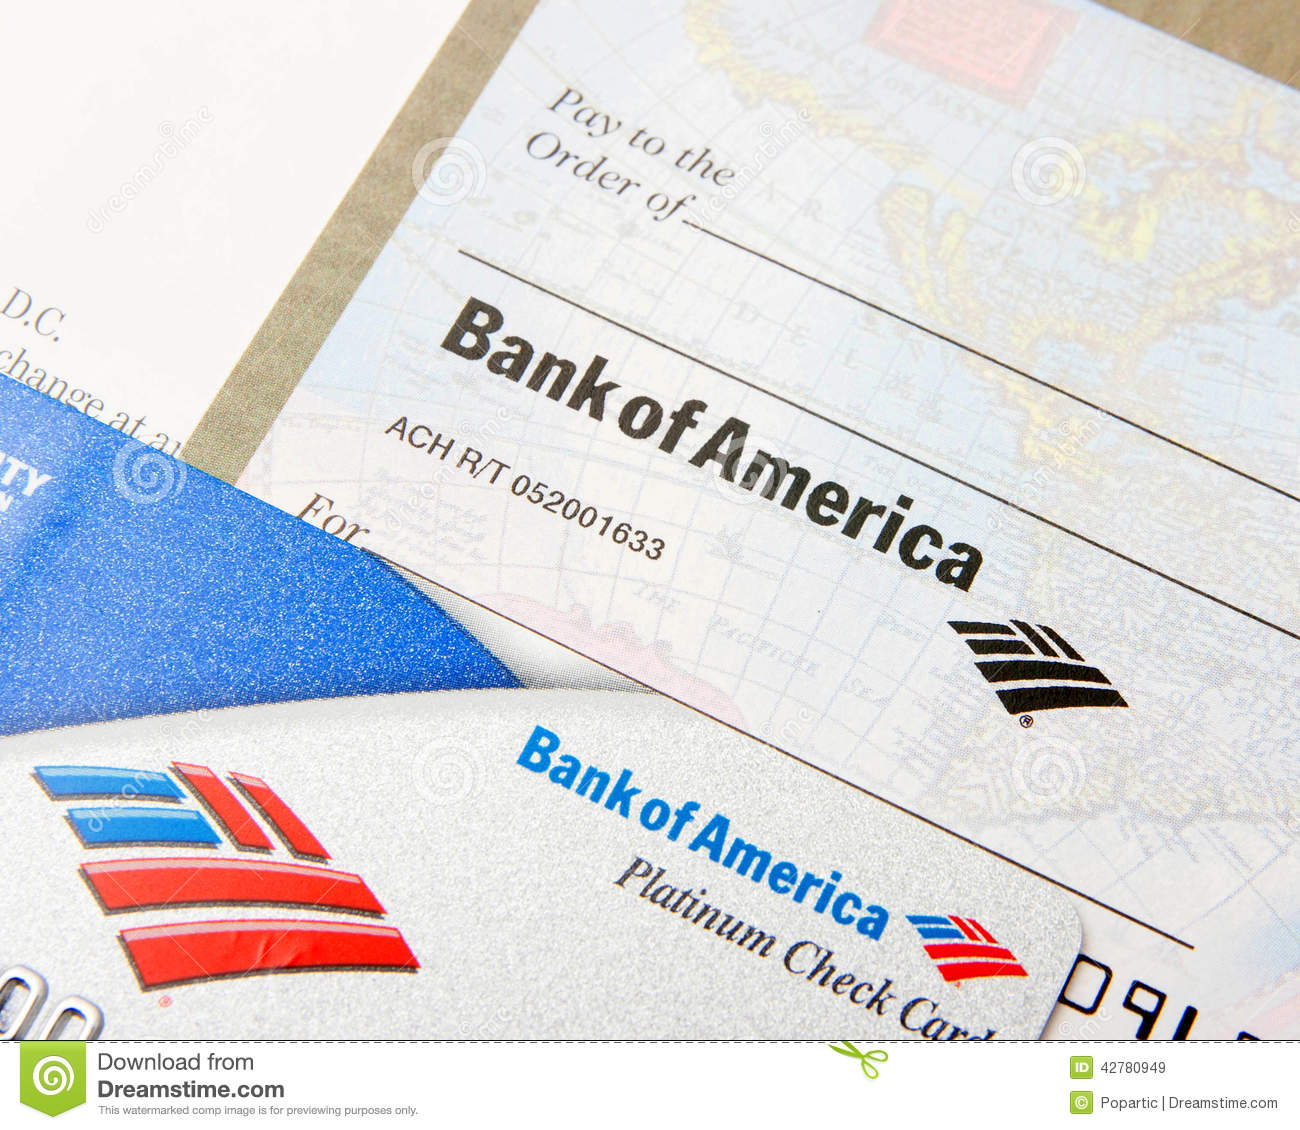 Bank Of America On A Debit Card And Check Editorial Stock